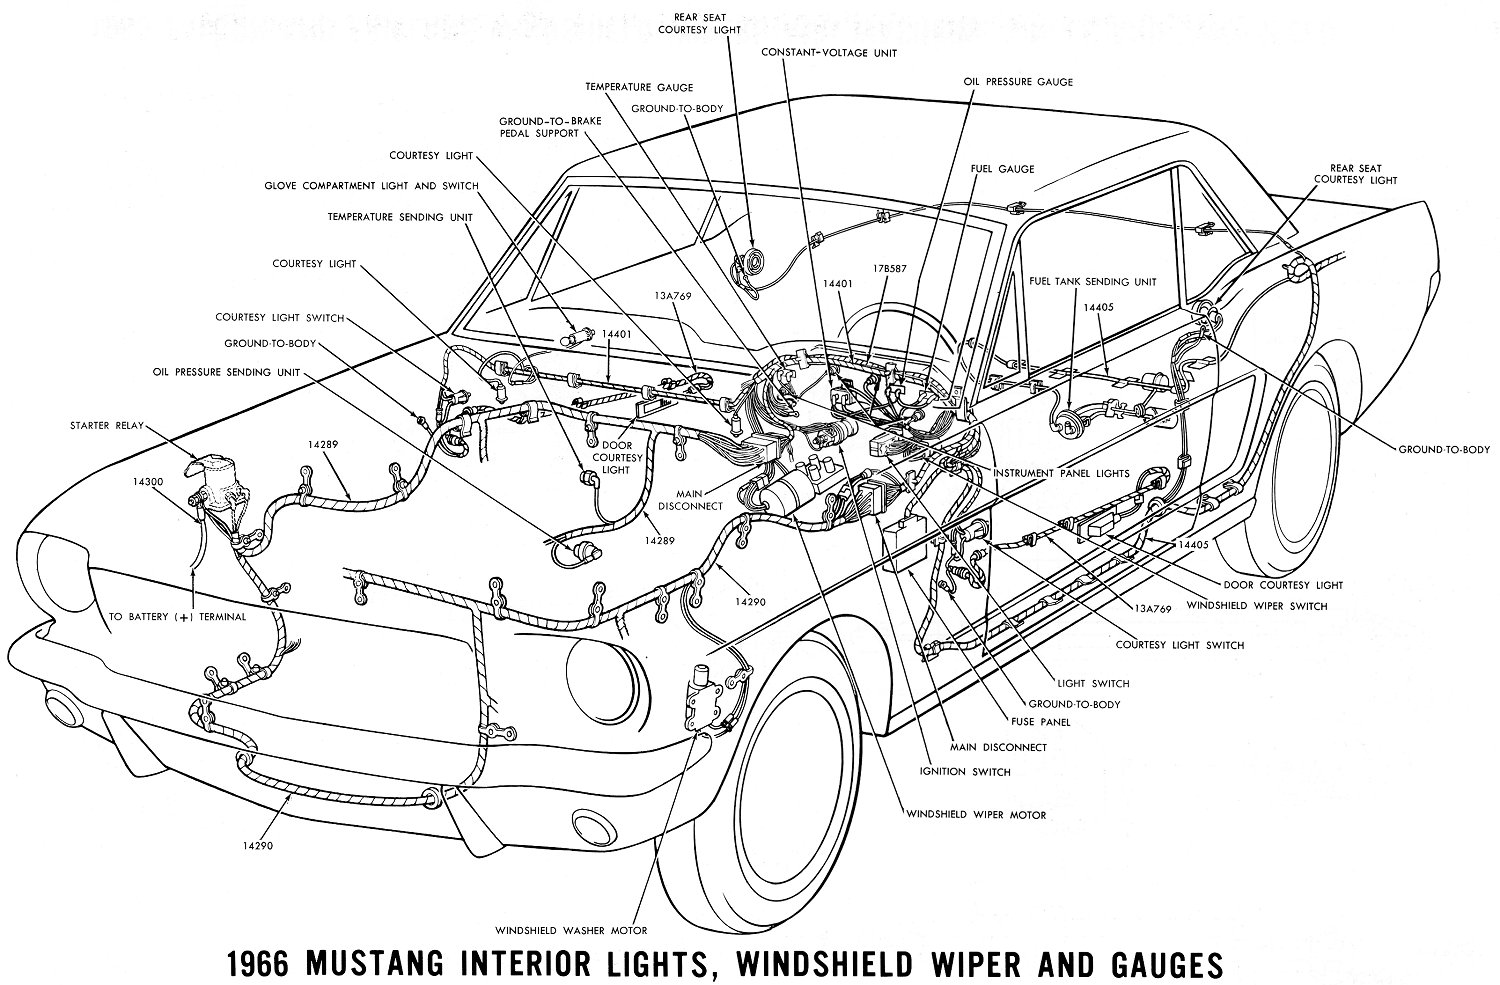 66inter 1966 mustang wiring diagrams average joe restoration 66 mustang voltage regulator wiring diagram at bakdesigns.co